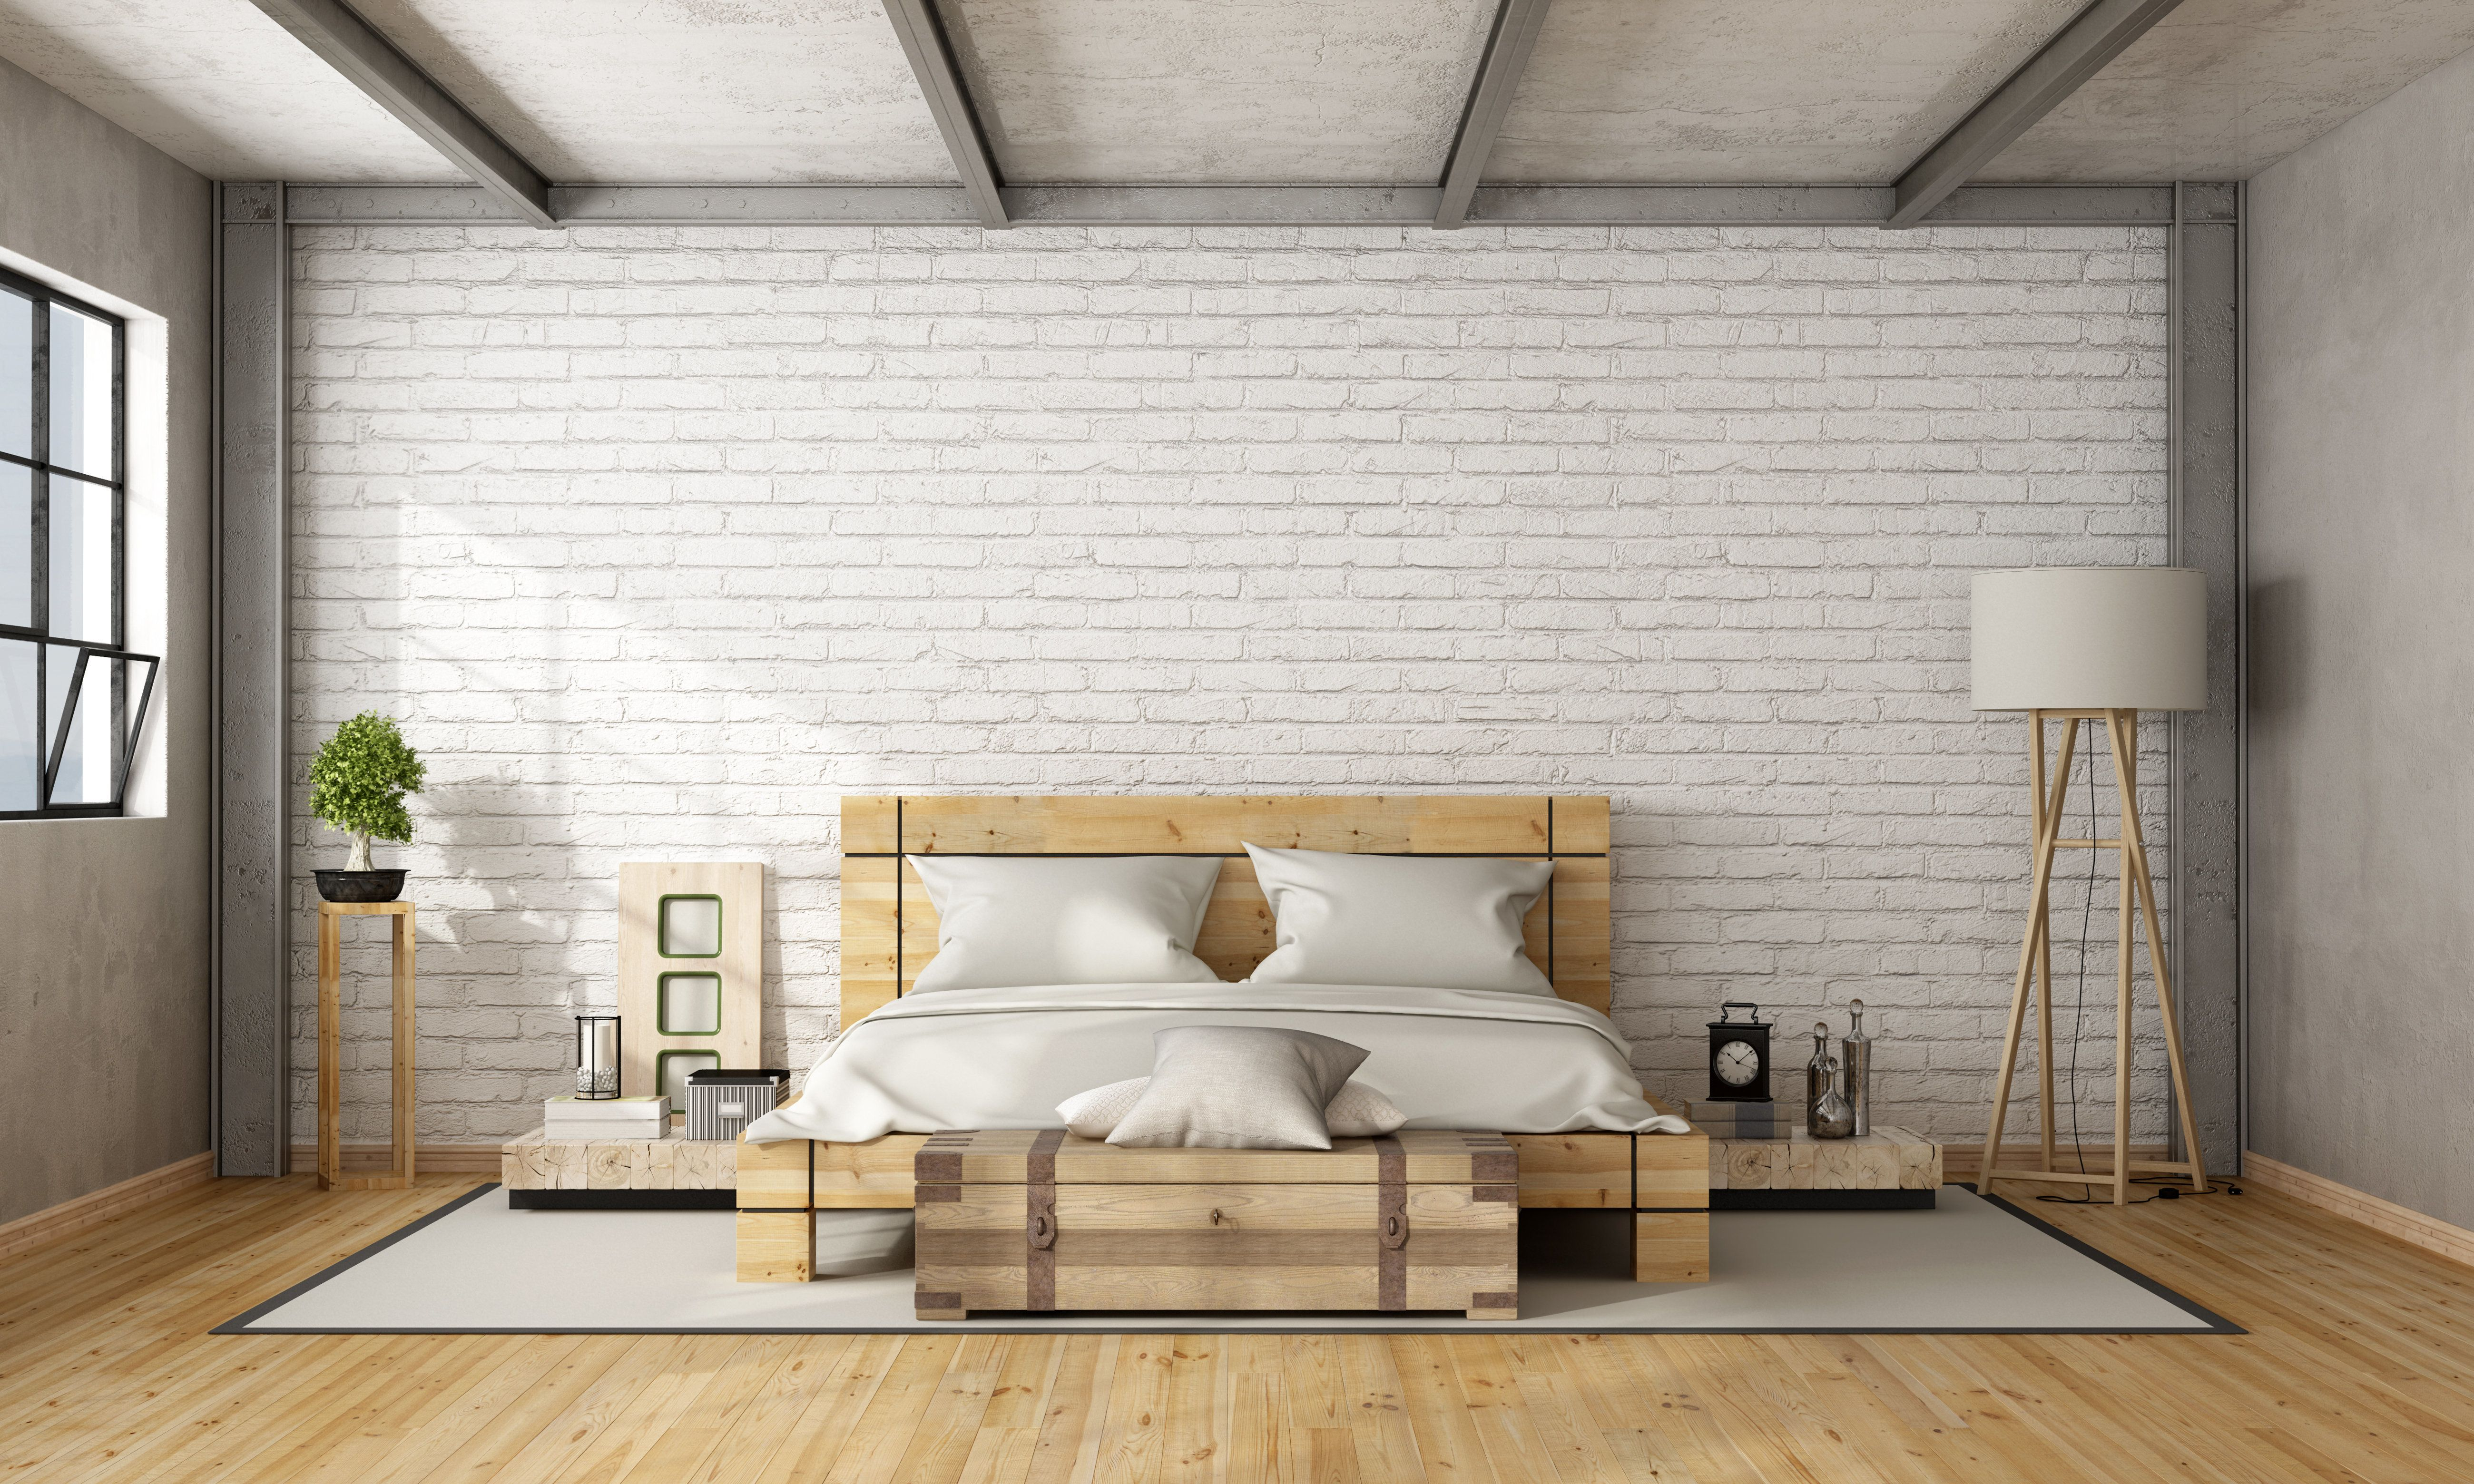 10 Minimalist Bedroom Essentials According To An Etsy Expert HuffPost